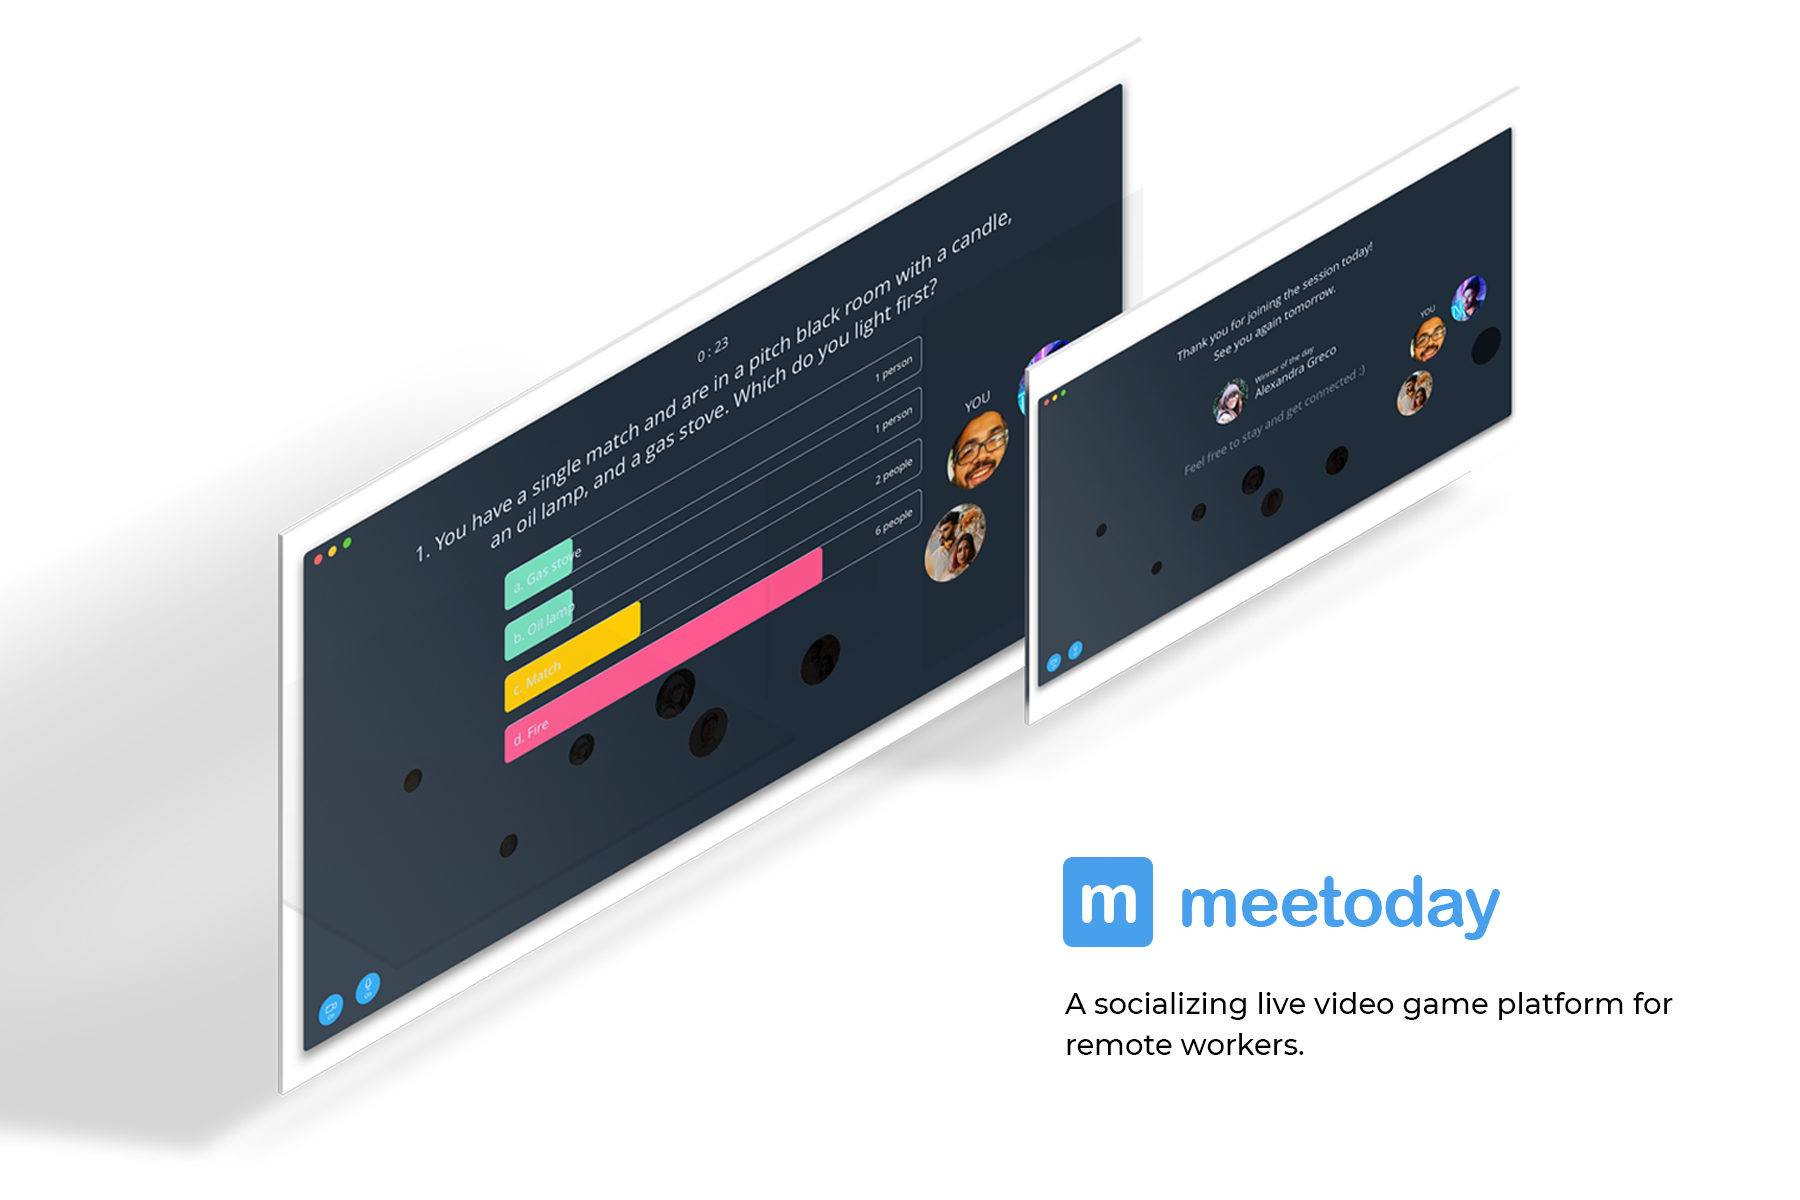 Meetoday A live social video game platform for remote workers.